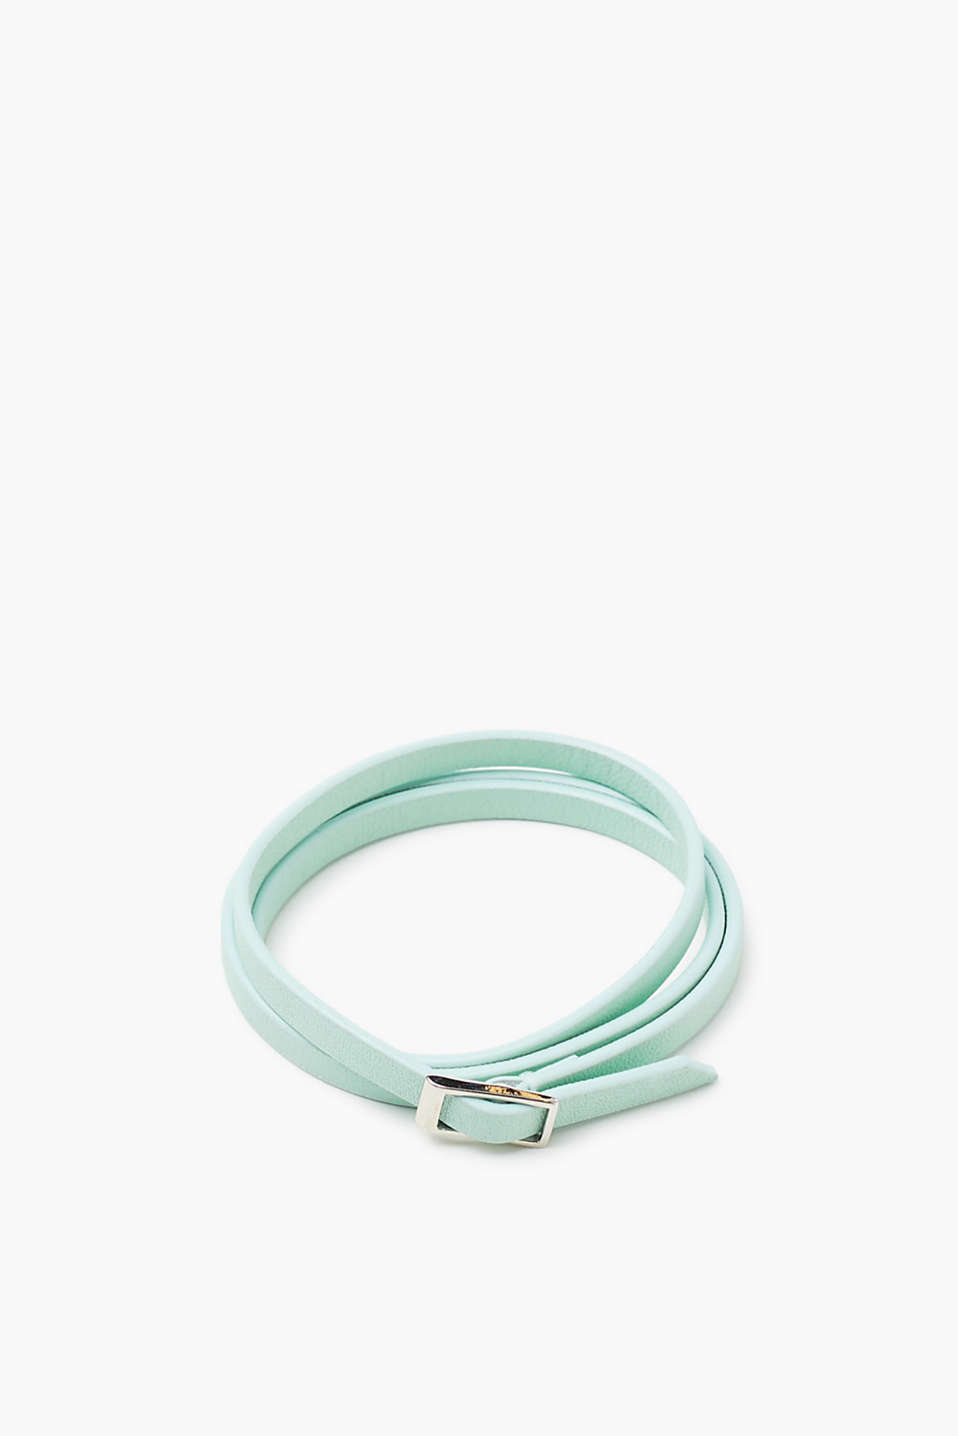 Leather bracelet with a high-shine metal buckle